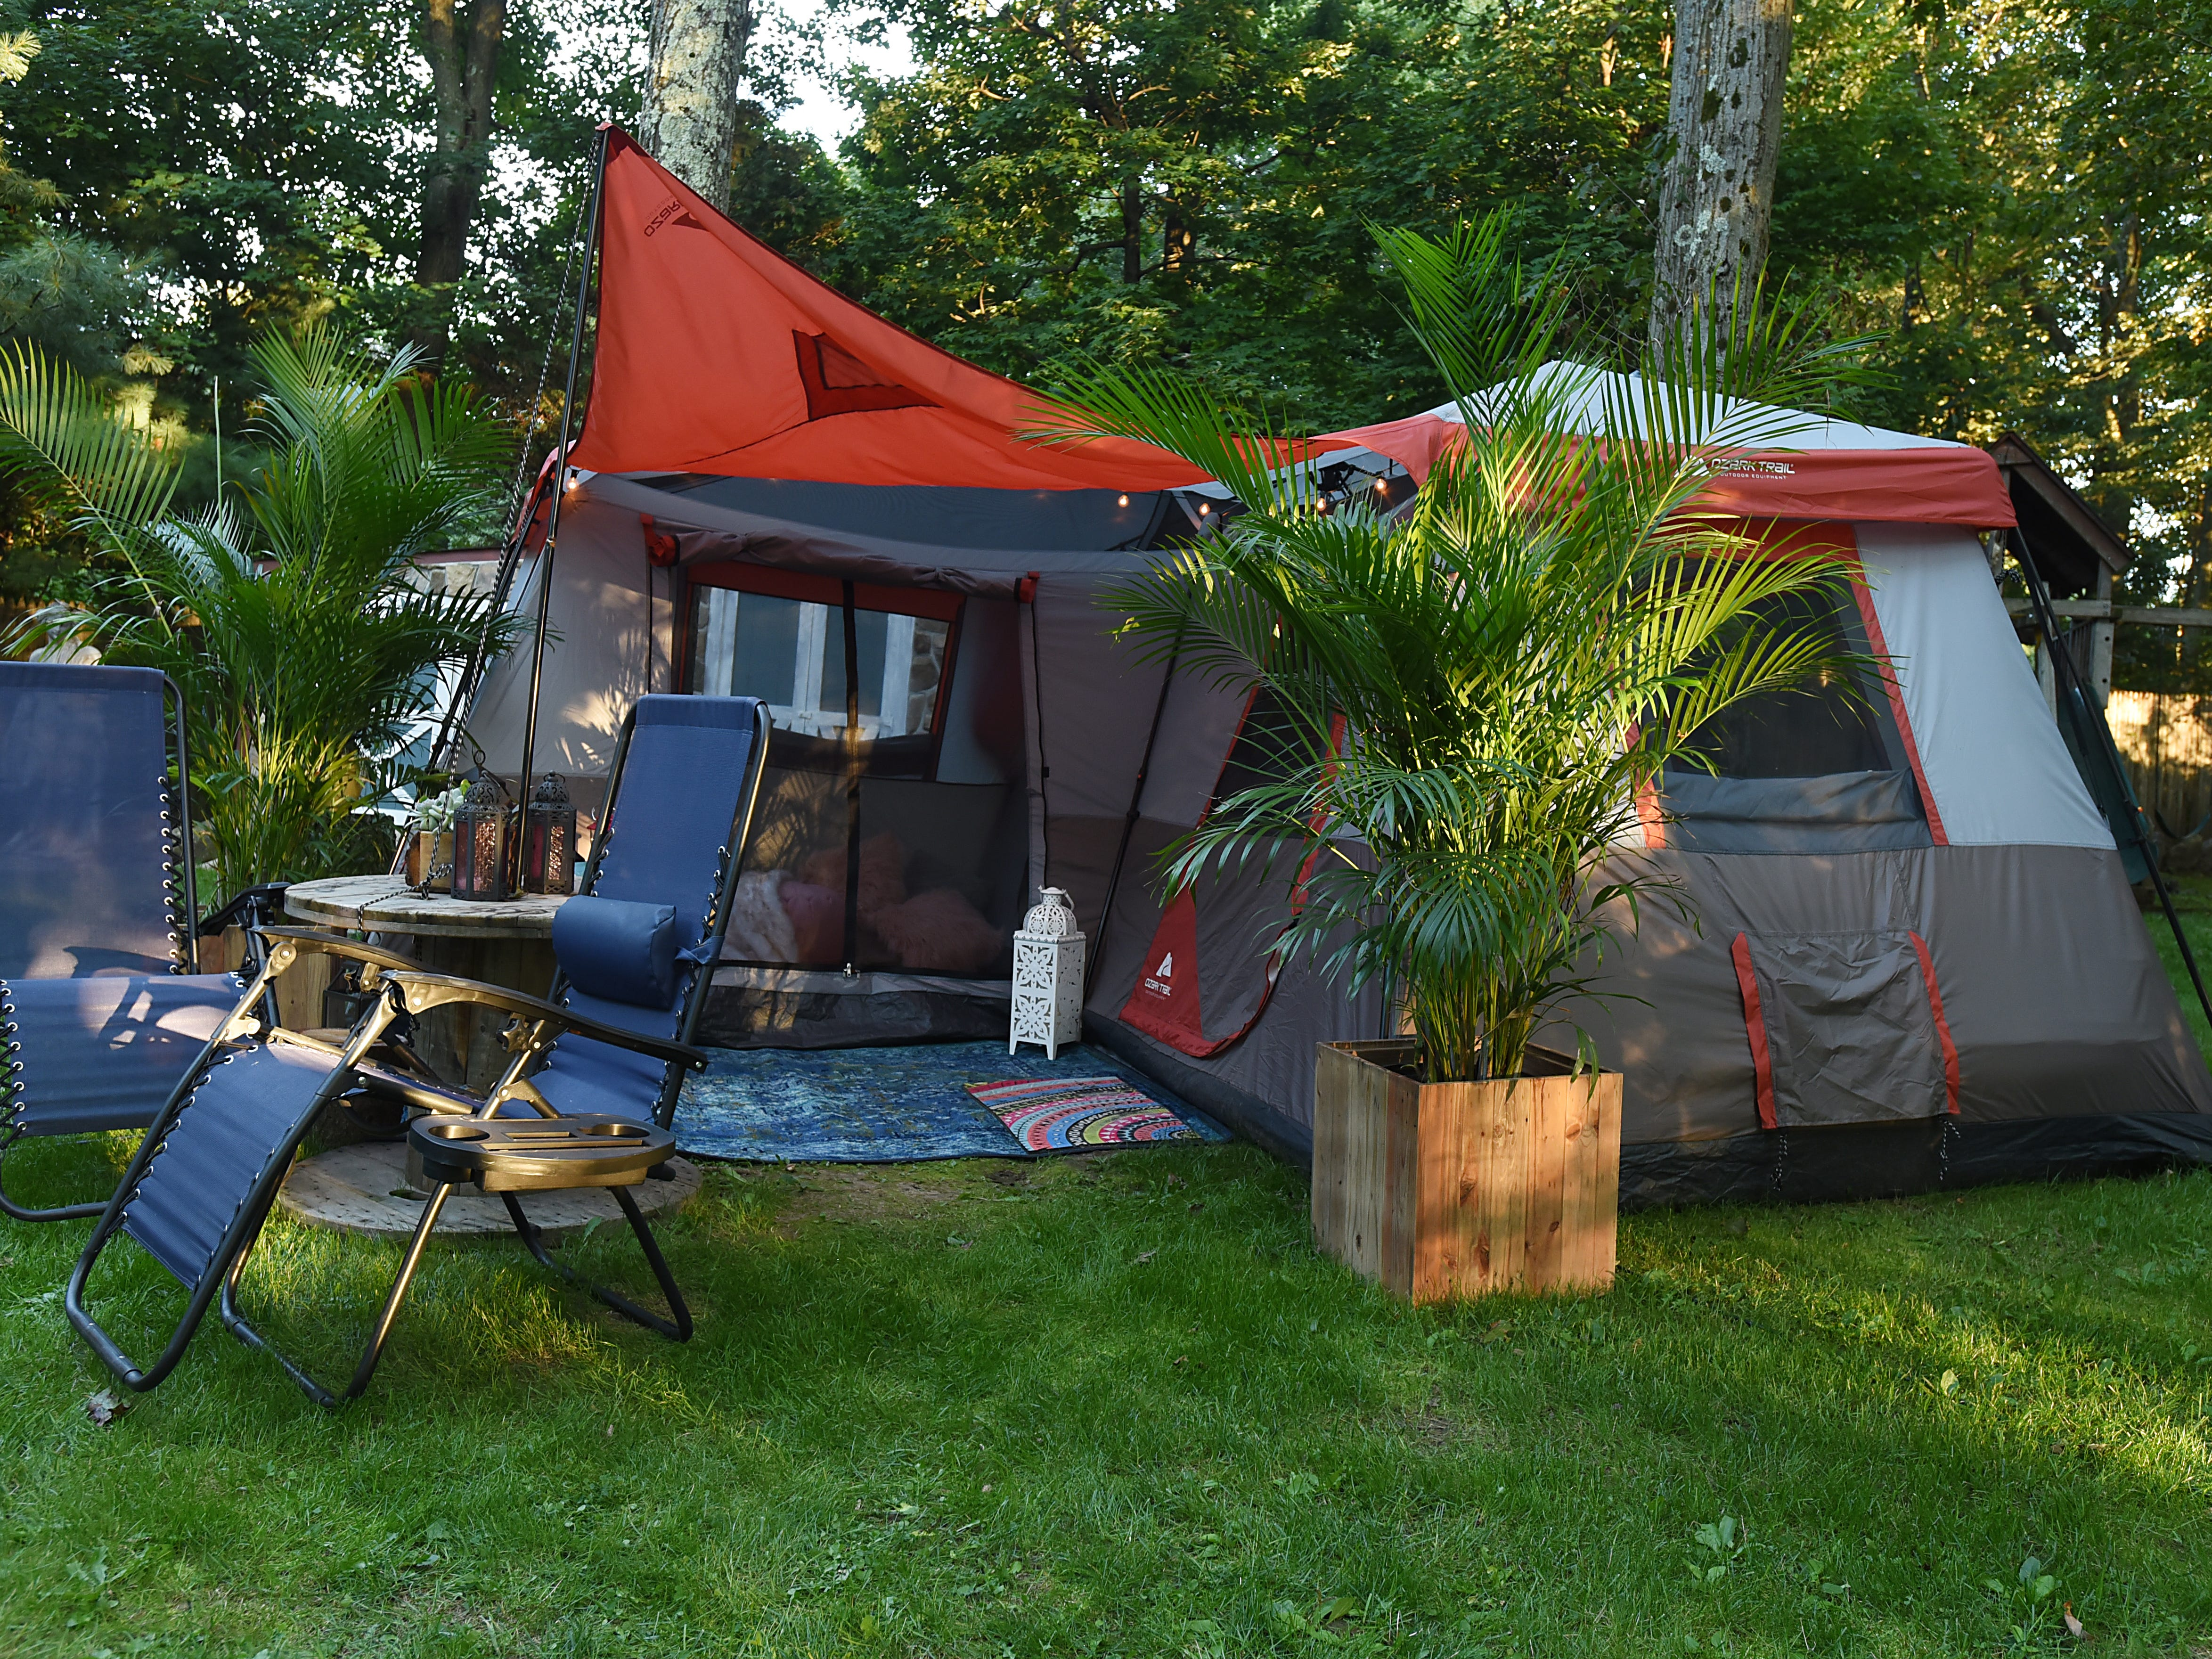 Melissa Ricapito and Mark Pyrka decide to rent out a tent in their backyard on Airbnb as a joke, much to their surprise it's been a hit. The tent rental allows access to all the backyard amenities the West Milford home has to offer. The exterior of the tent shown on Thursday August 30, 2018.